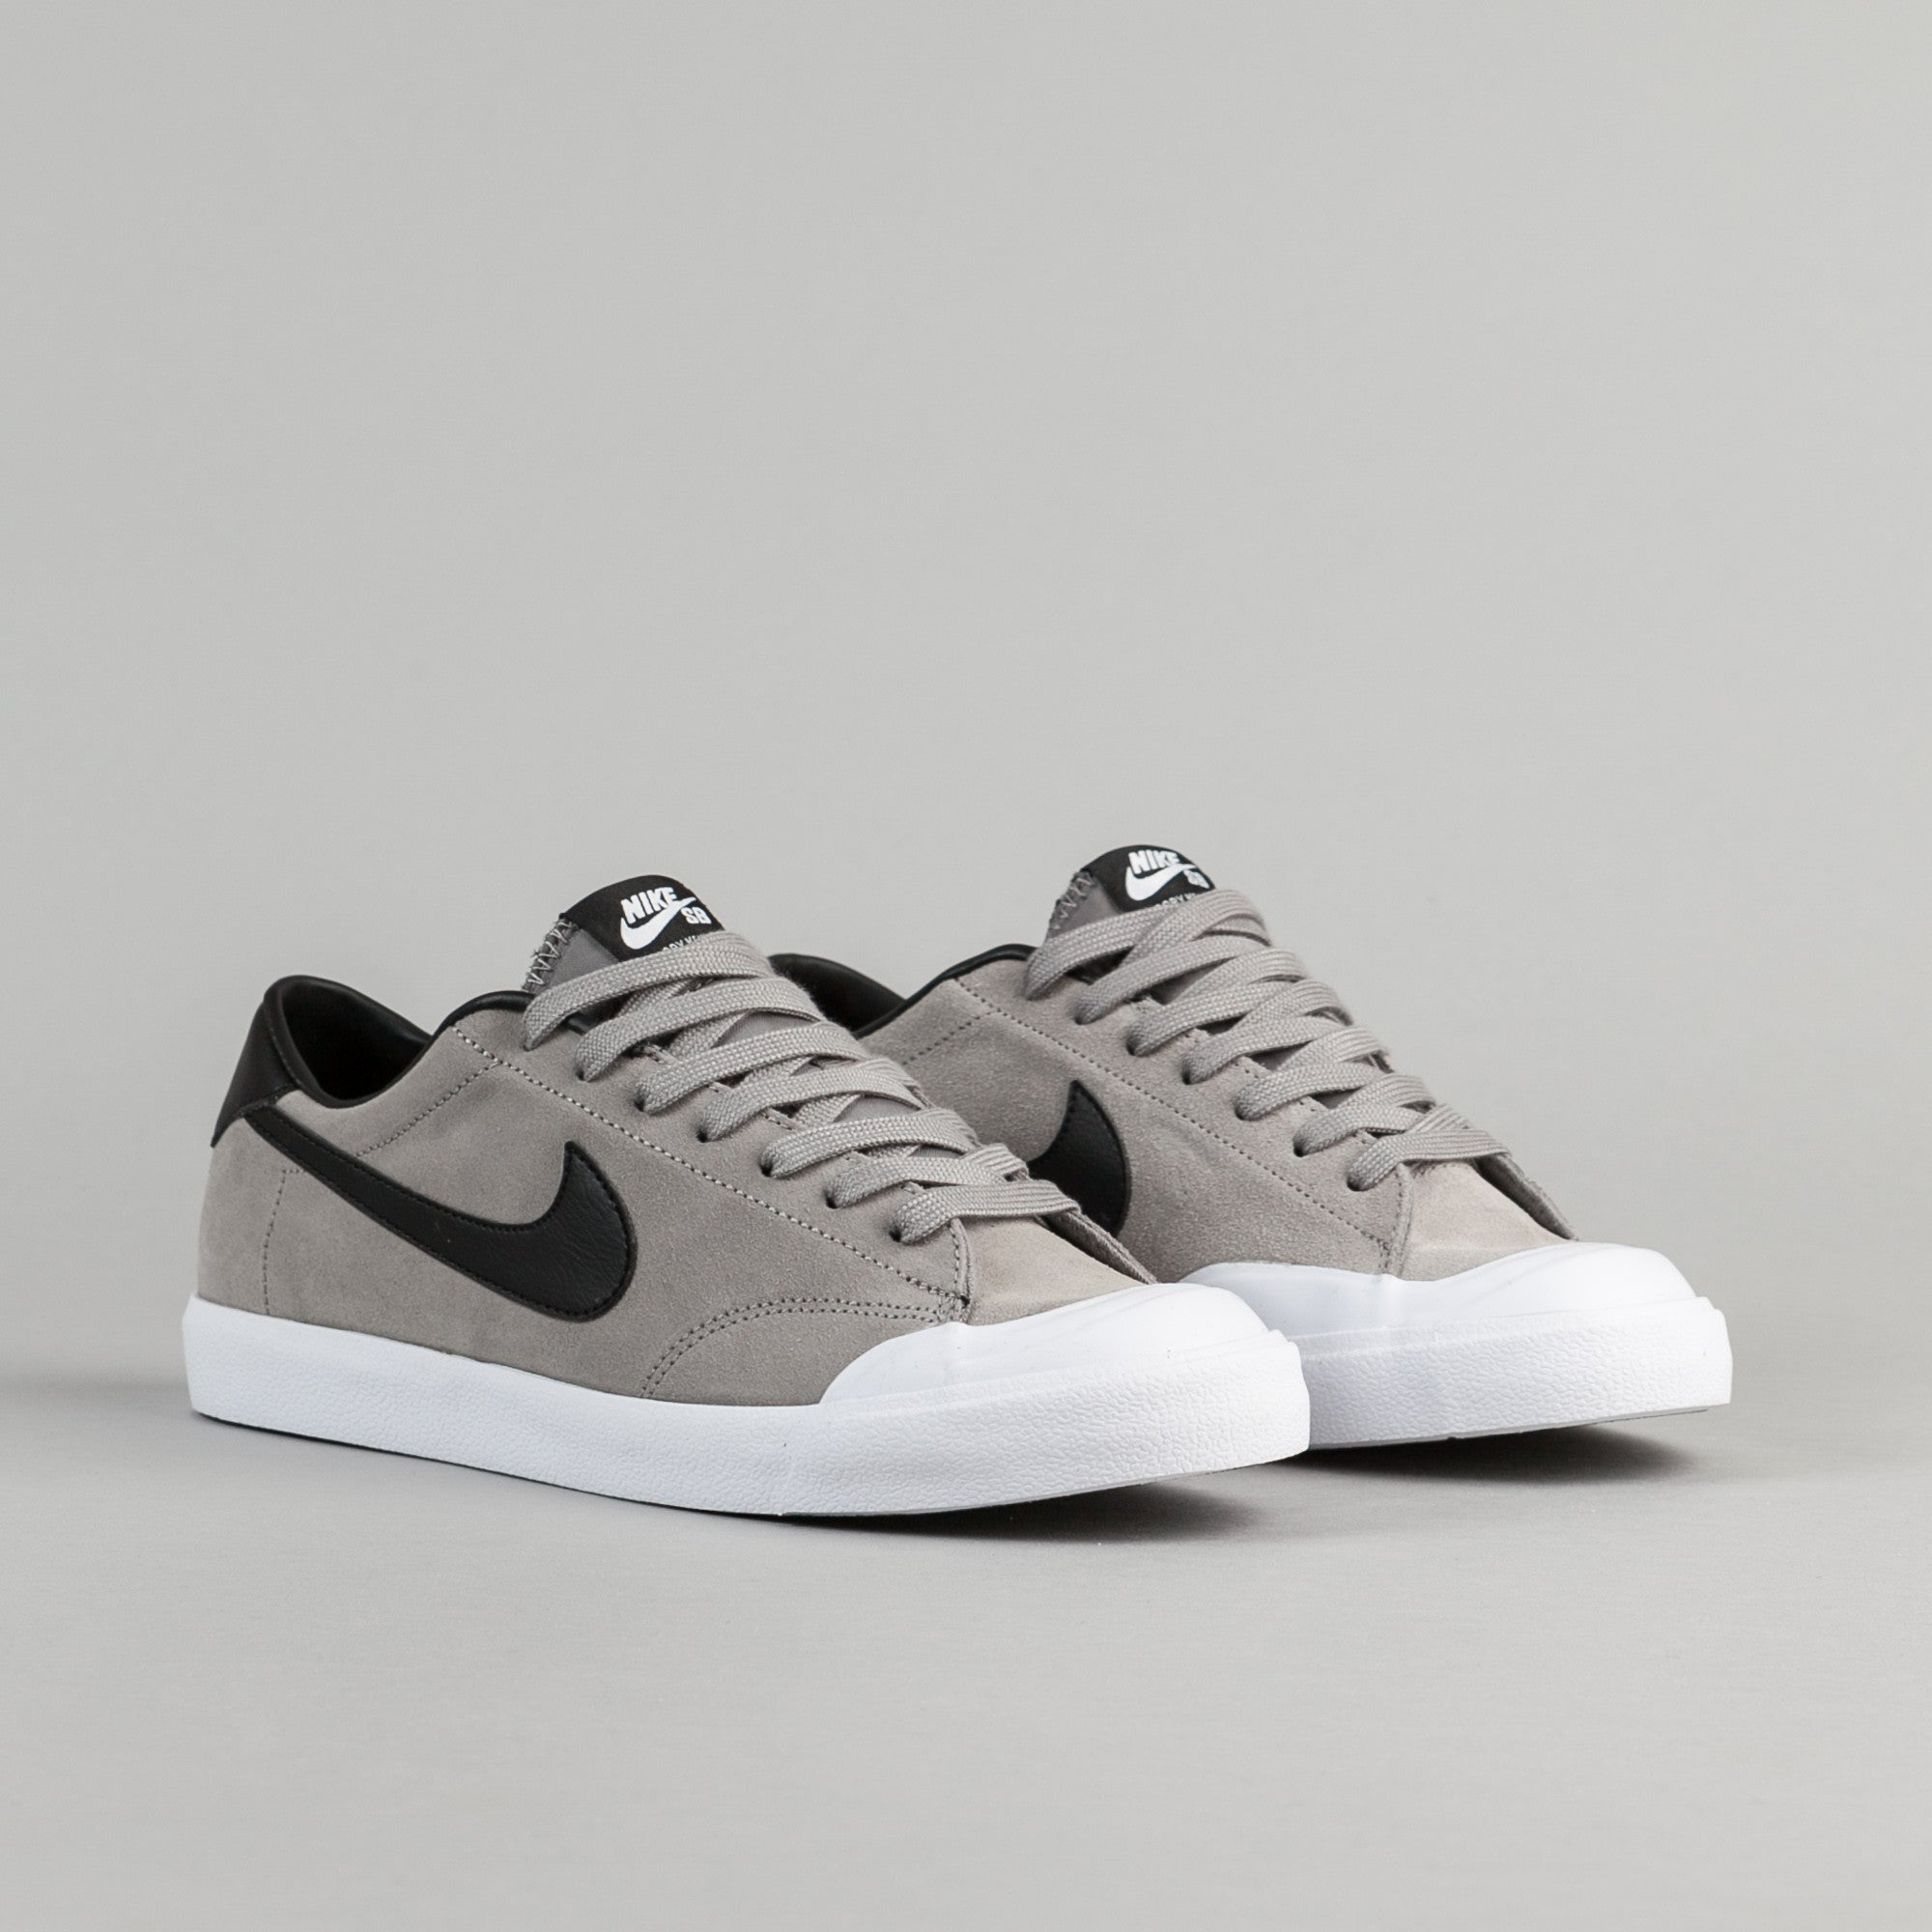 Nike SB All Court CK Shoes - Dust / Black - White